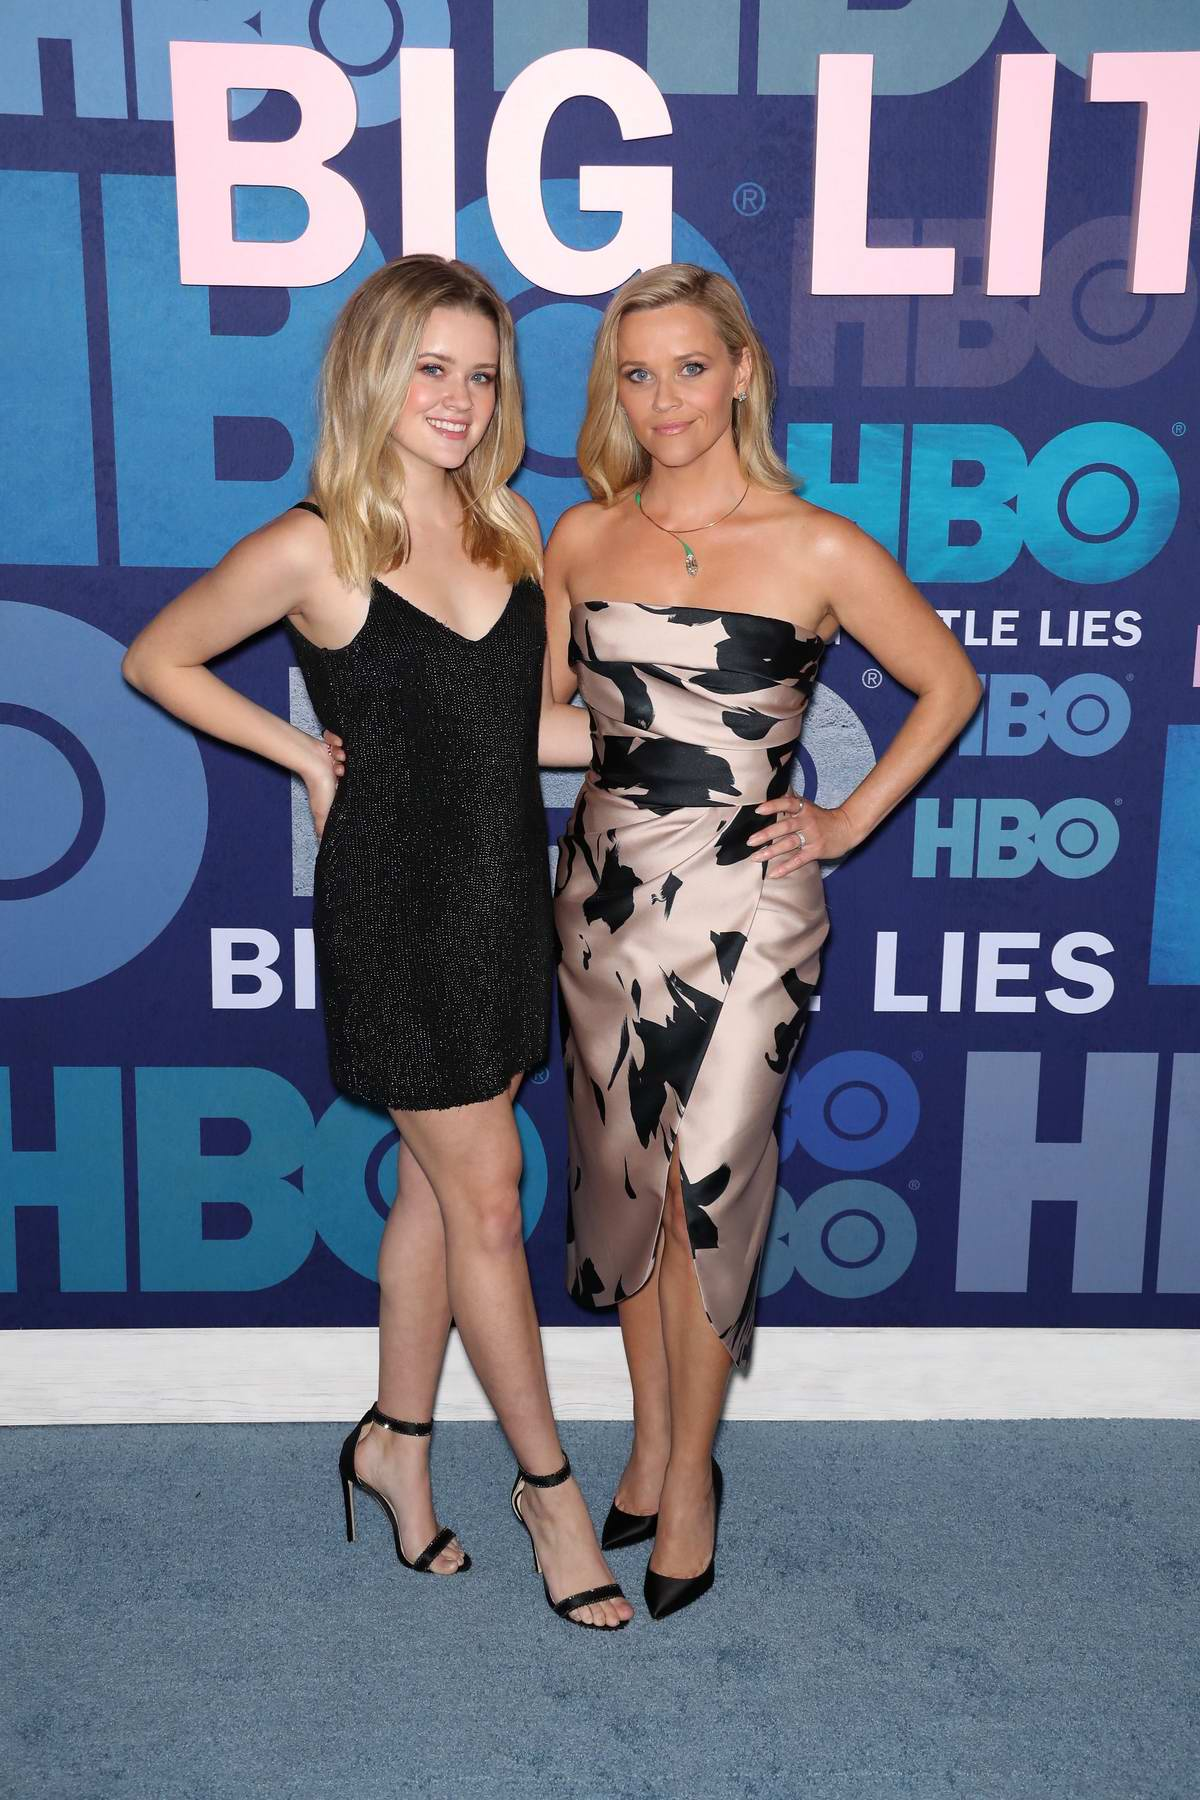 Reese Witherspoon and Ava Phillippe attend the Premiere of 'Big Little Lies' Season 2 in New York City